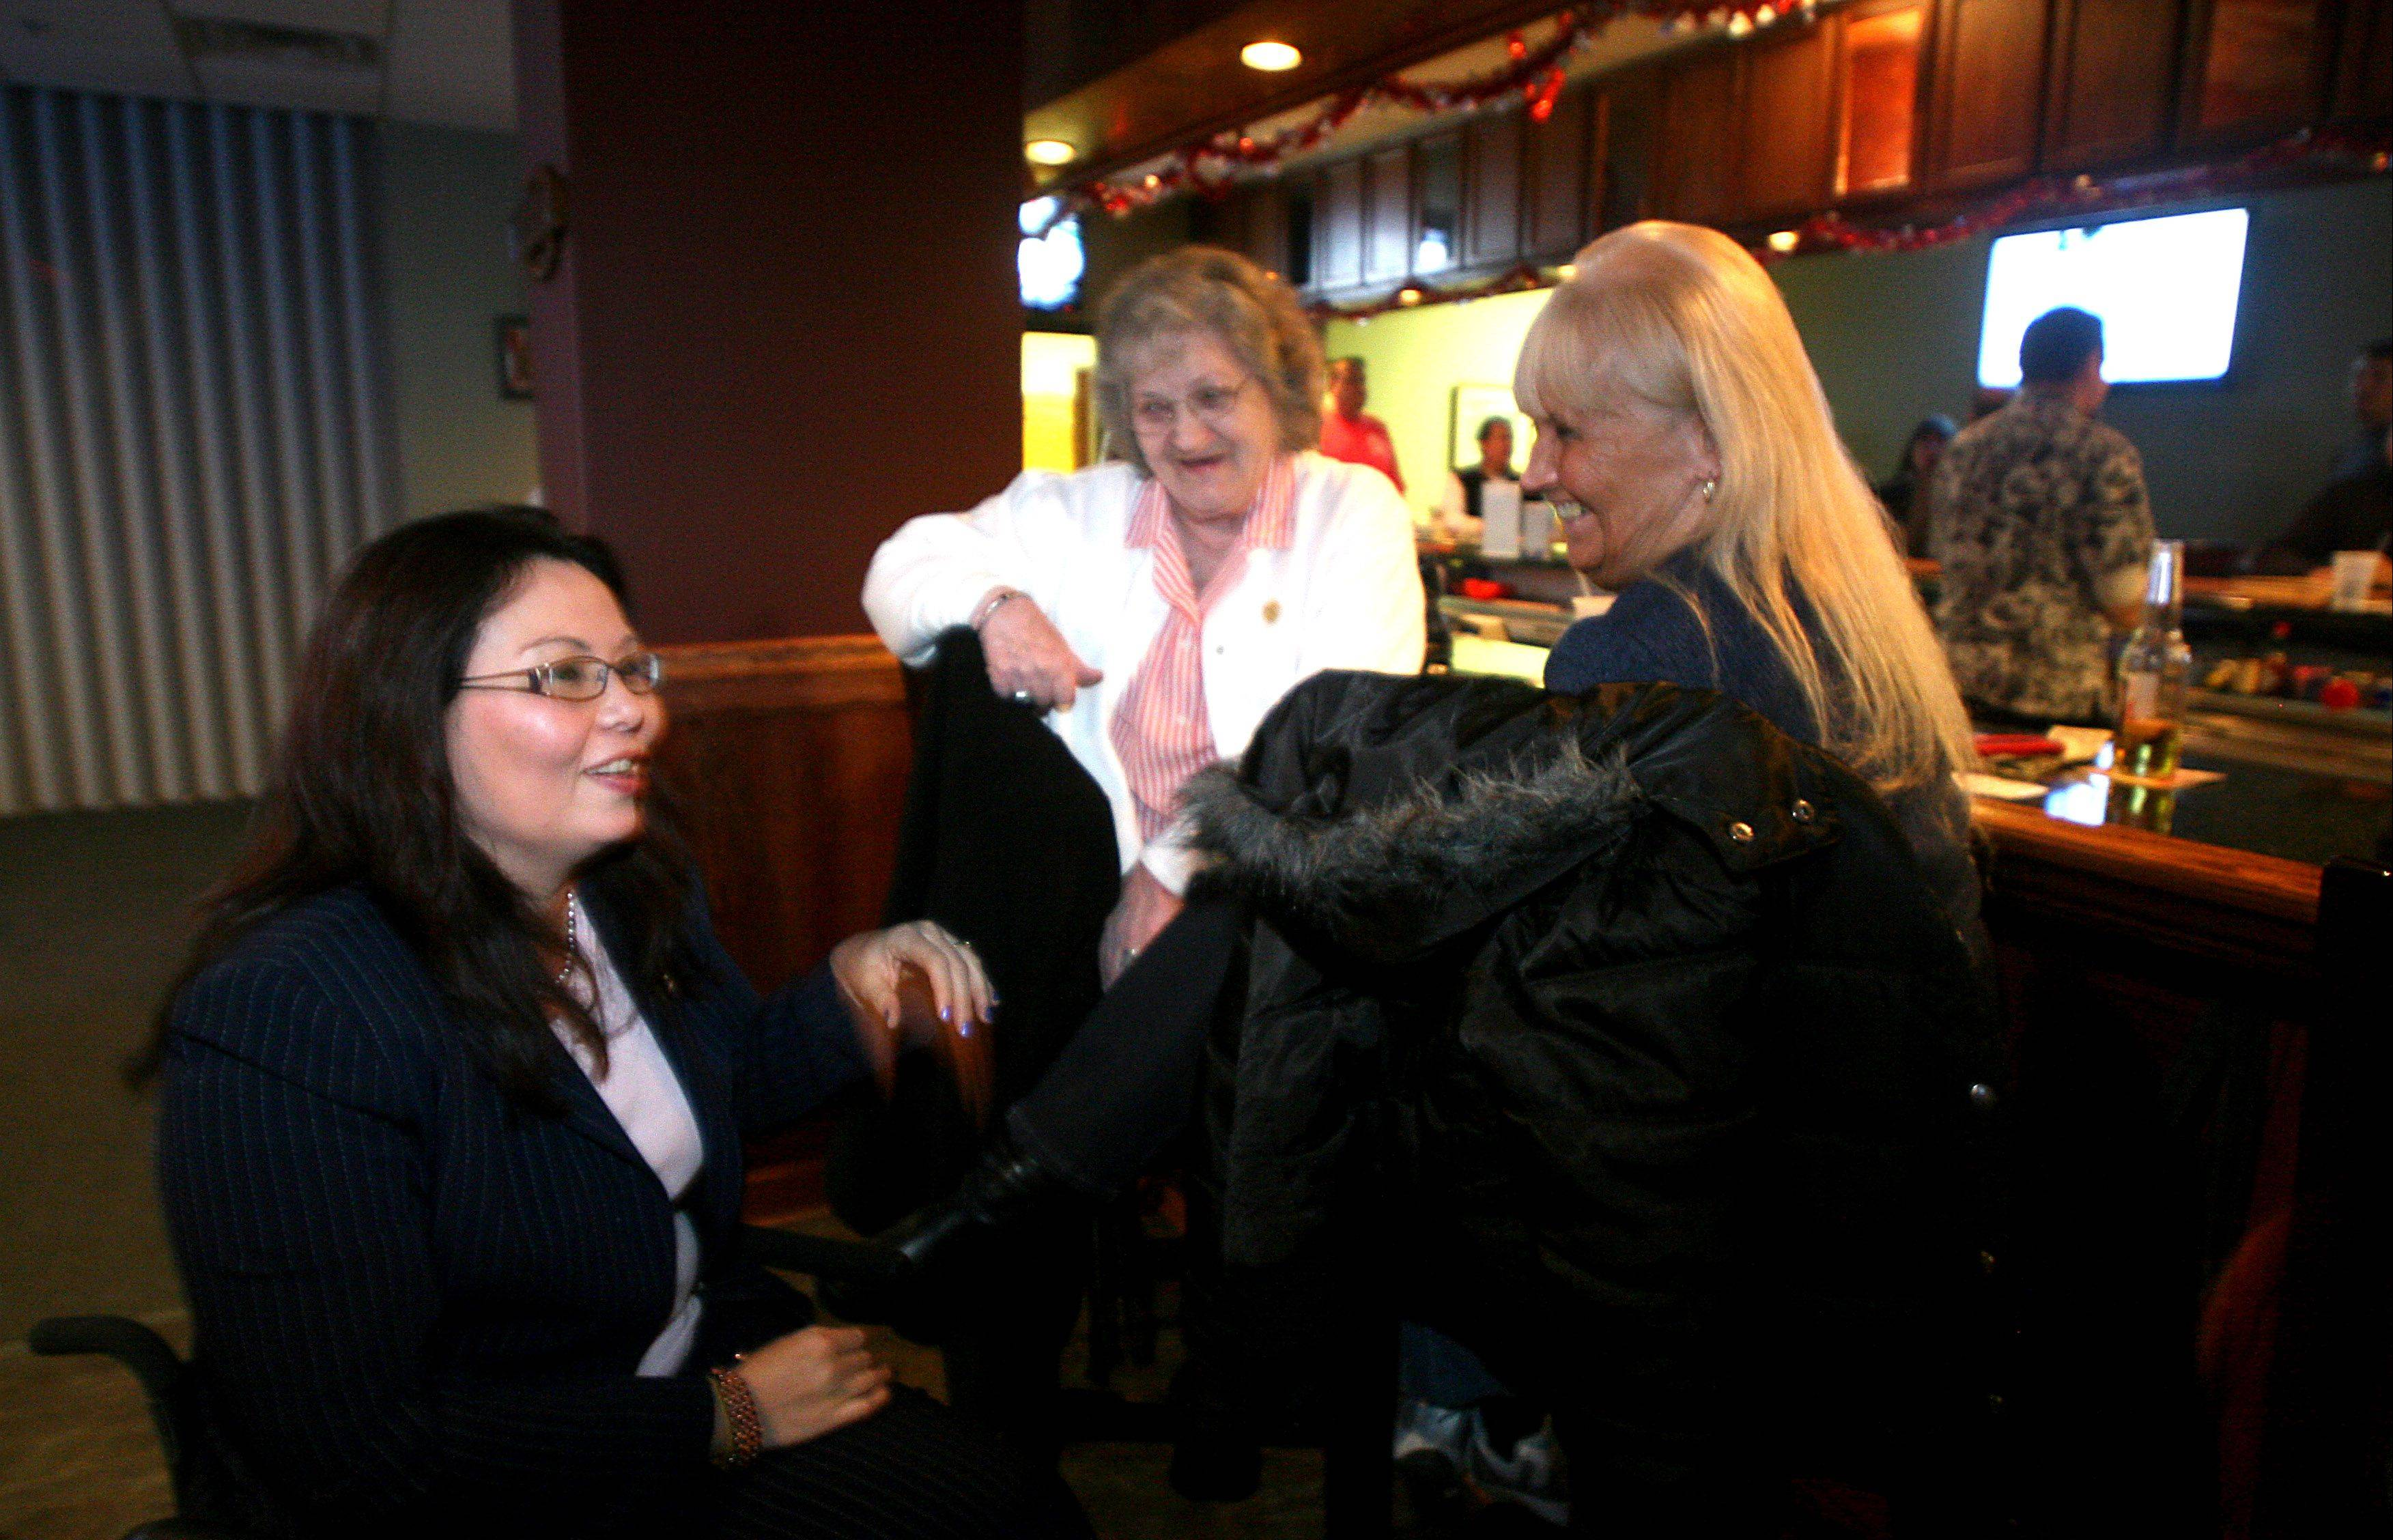 U.S. Rep. Tammy Duckworth speaks with Mary Werrbach, center, and Norma Linehan, right, both of Elgin, at Elgin VFW Post 1307 on Wednesday night. Duckworth contributed to efforts to donate supplies for wounded soldiers overseas.